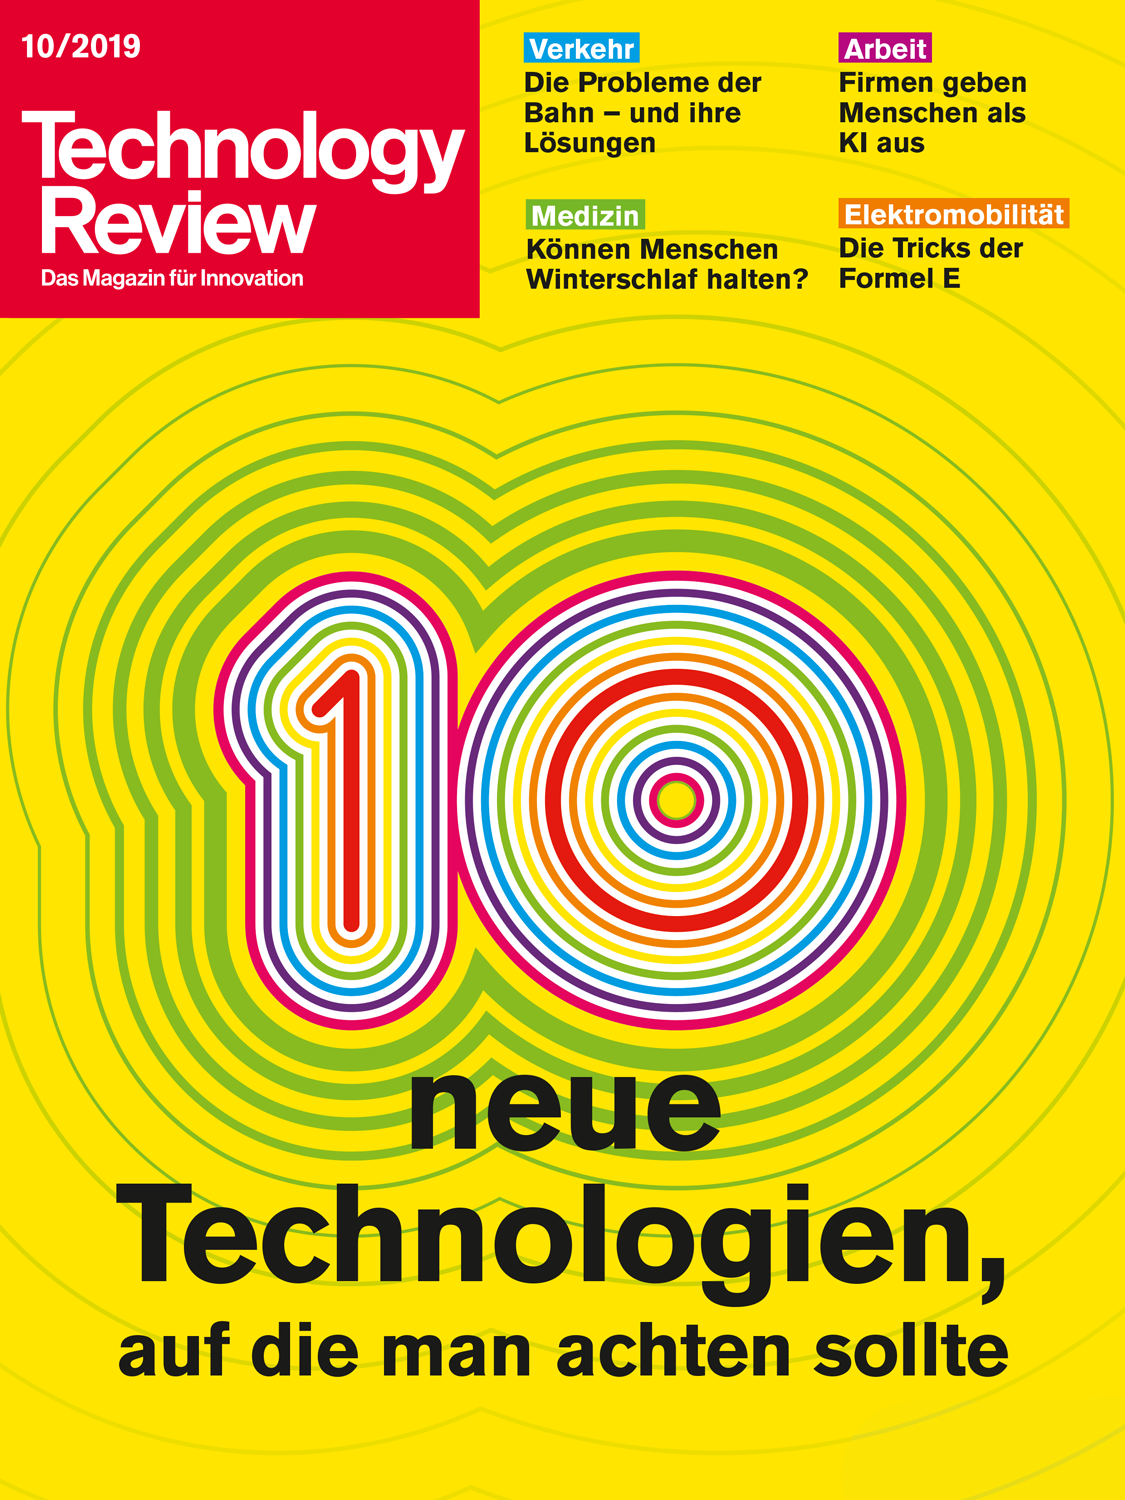 Technology Review 10/2019